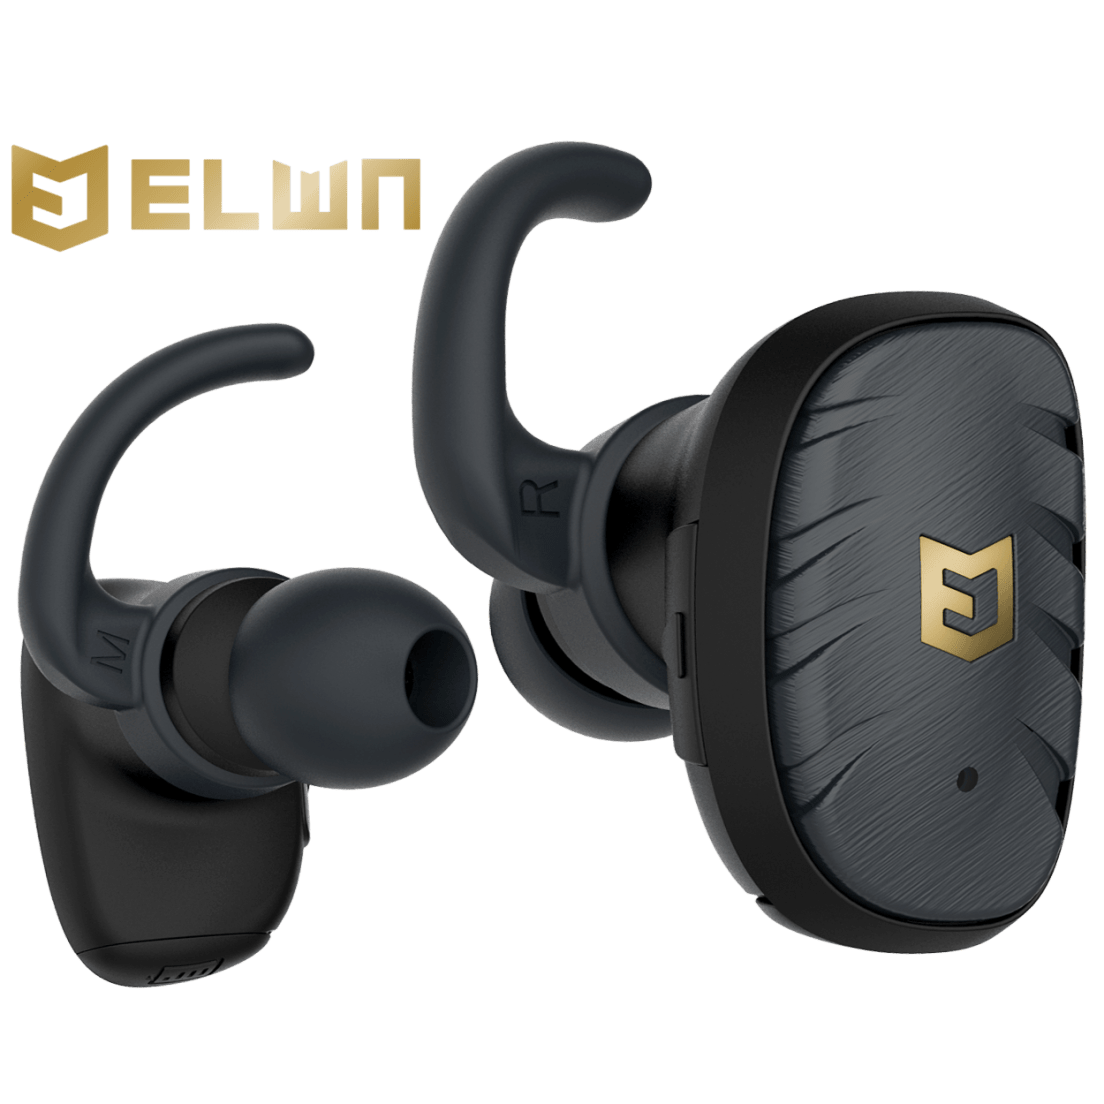 04071e97f77 ELWN Fit True Wireless Bluetooth Sport Earbuds with Infinity Band